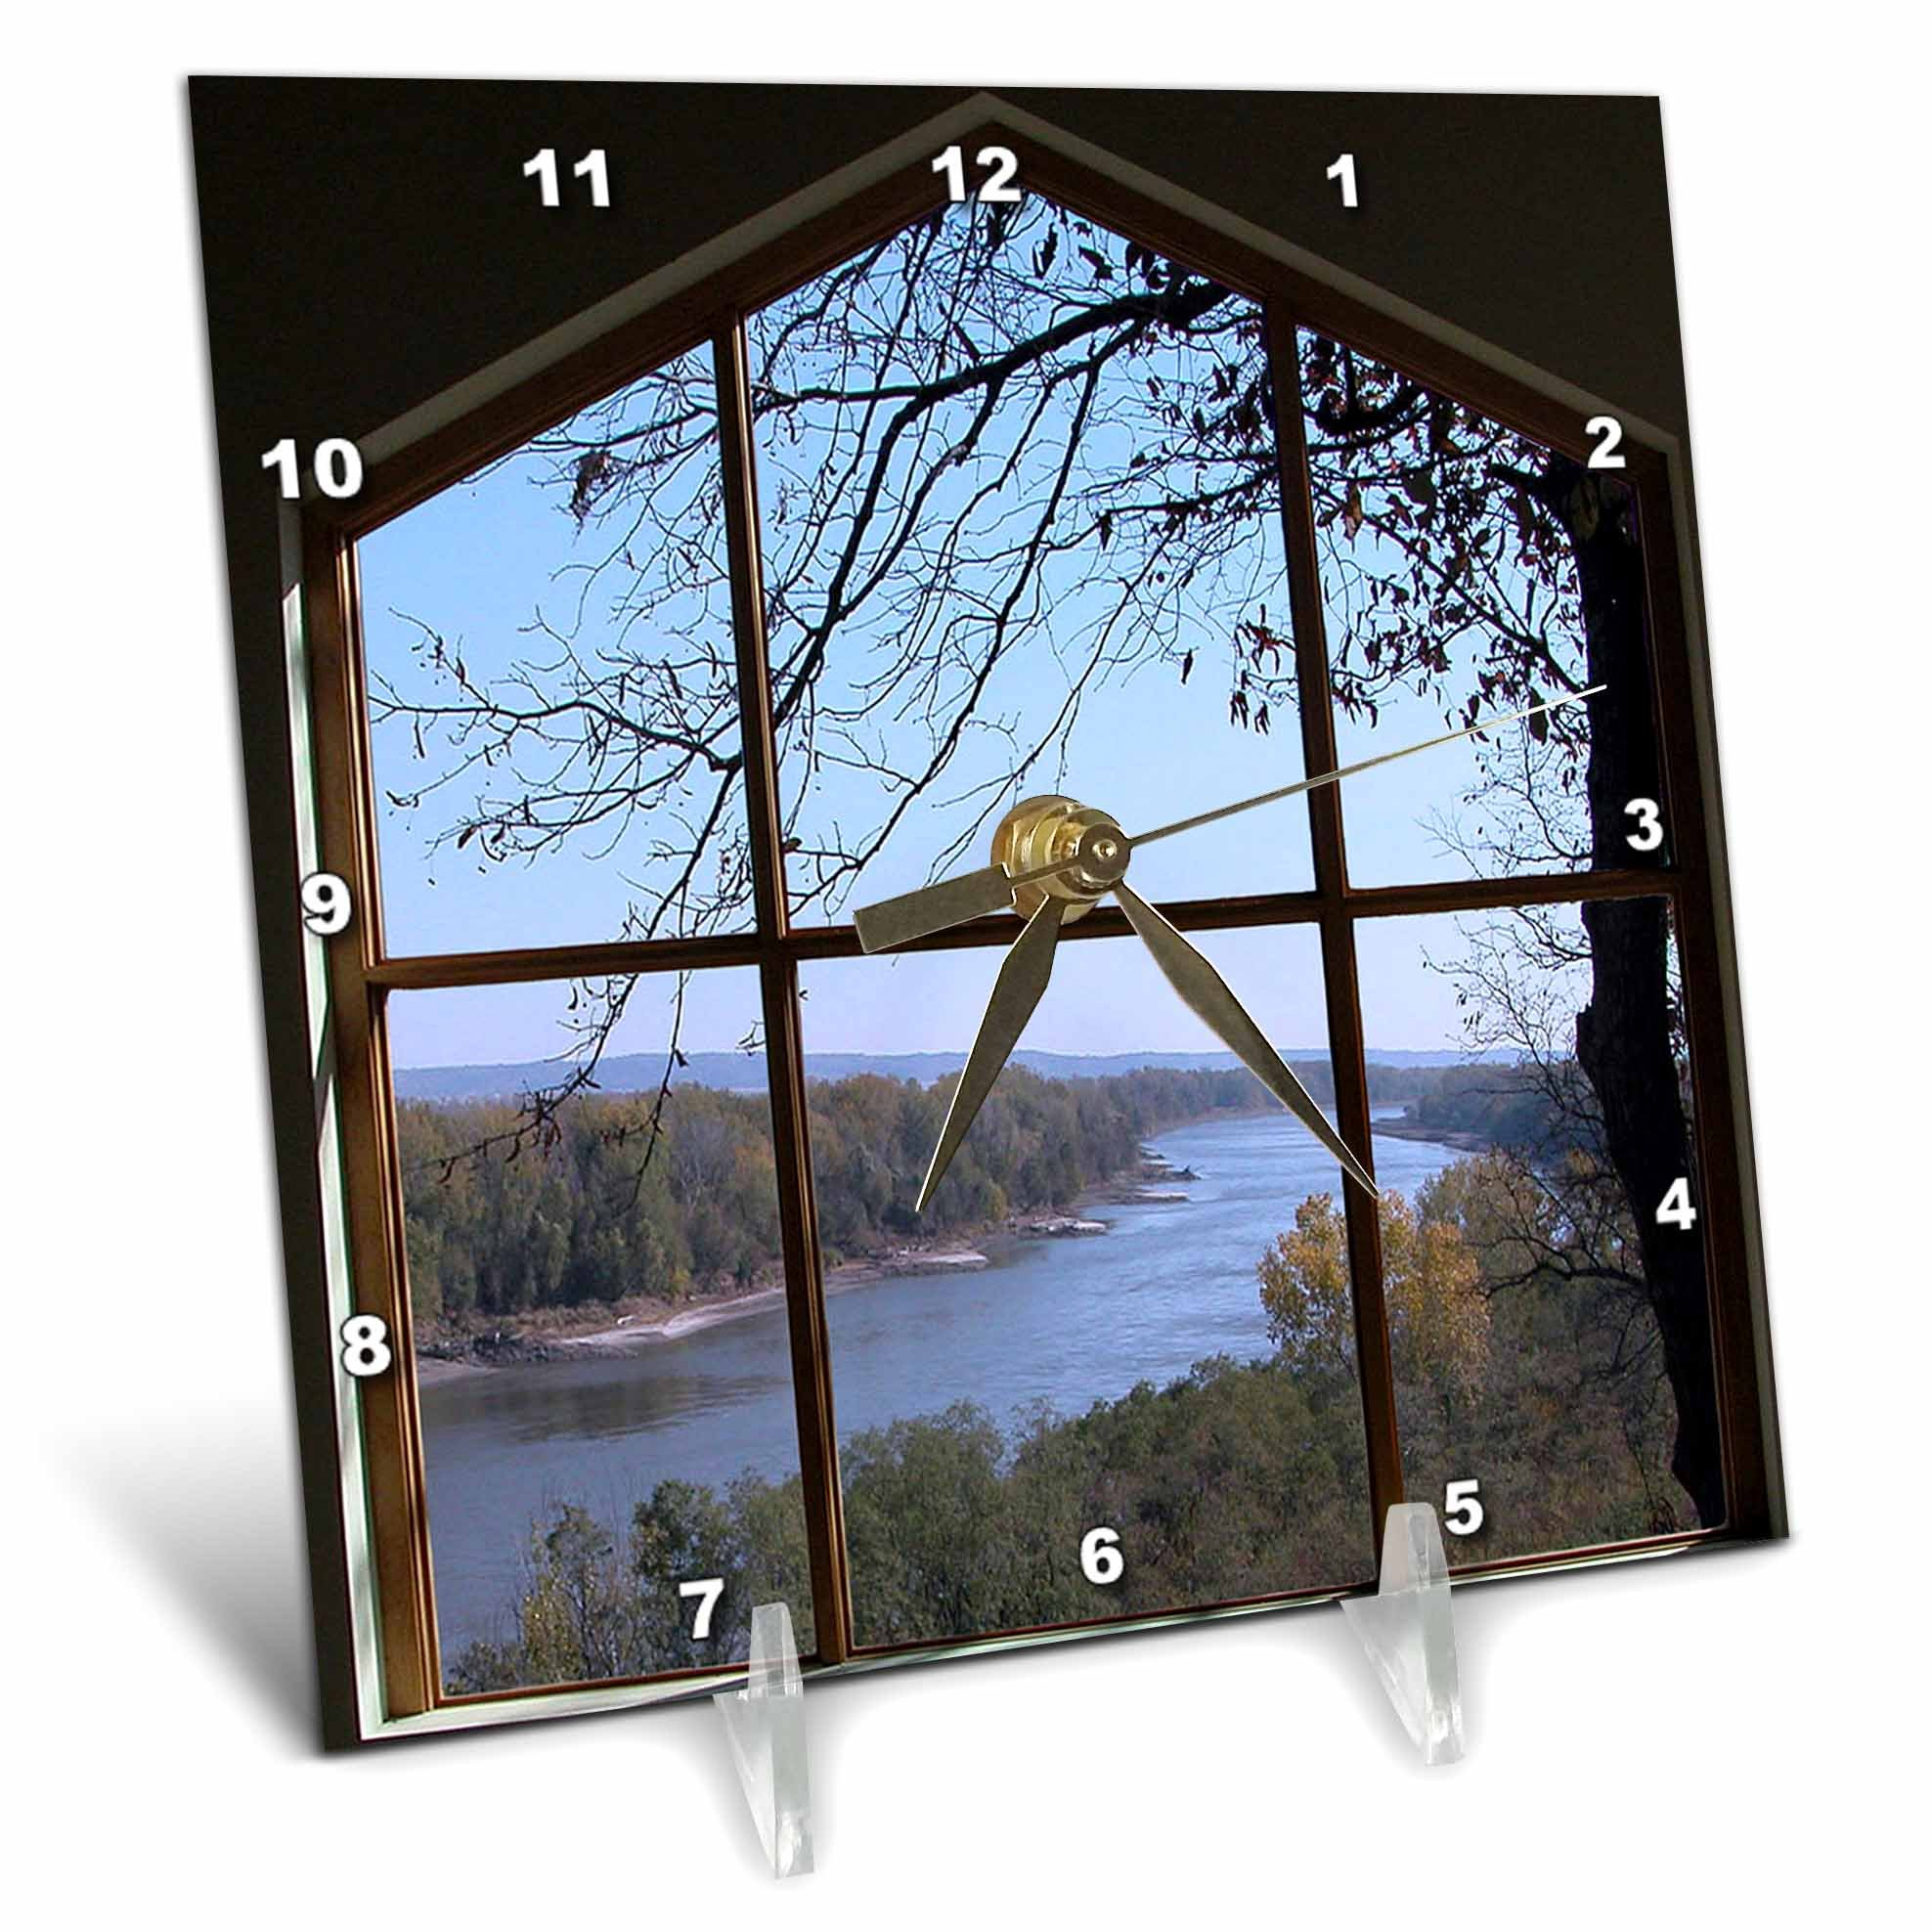 3dRose Beverly Turner Photography Picture Window of a River Desk Clock, 6 by 6-Inch